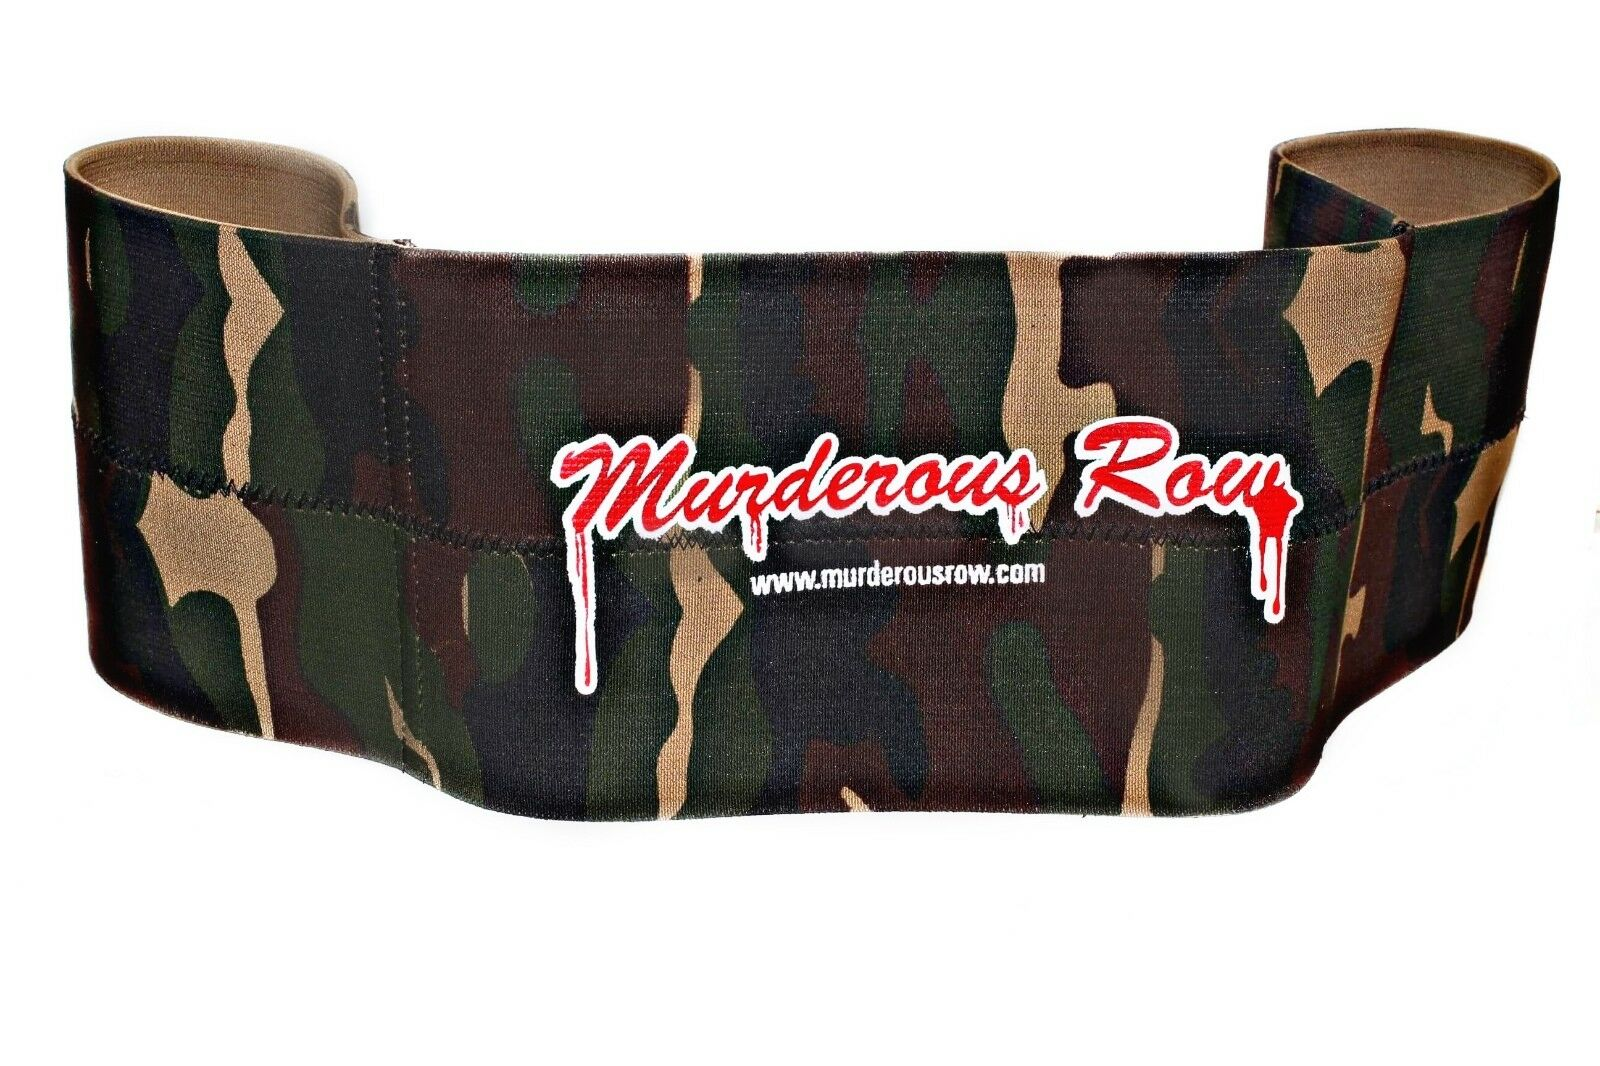 MURDEROUS ROW Bench Press Sling Shot (2XL) DESERT STORM - FREE FAST SHIPPING